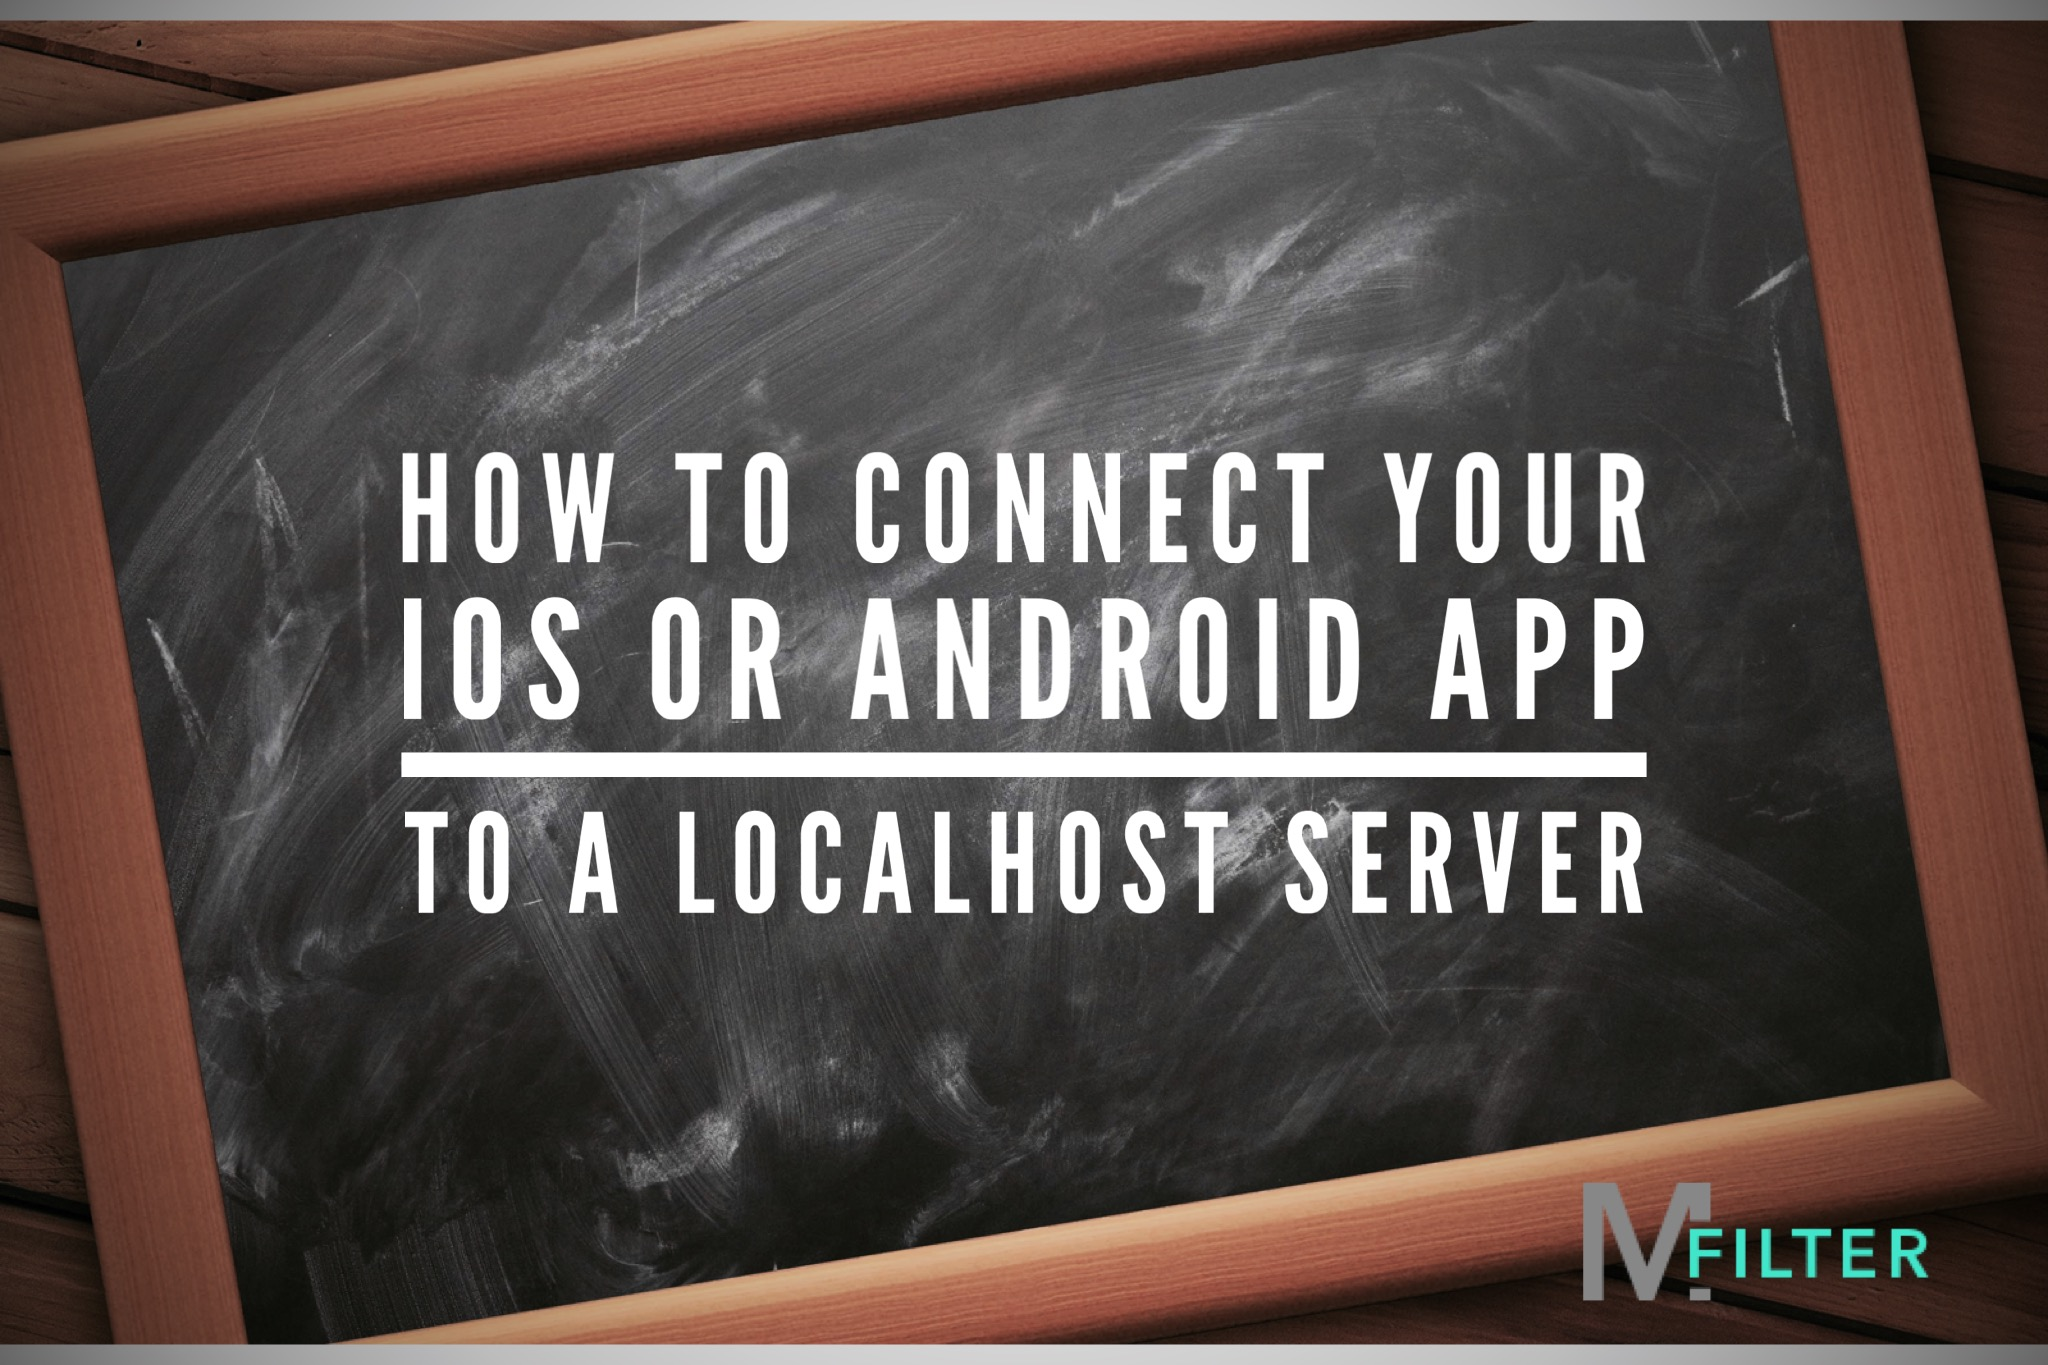 How To Connect Your iOS Or Android App To A Localhost Server - Mark